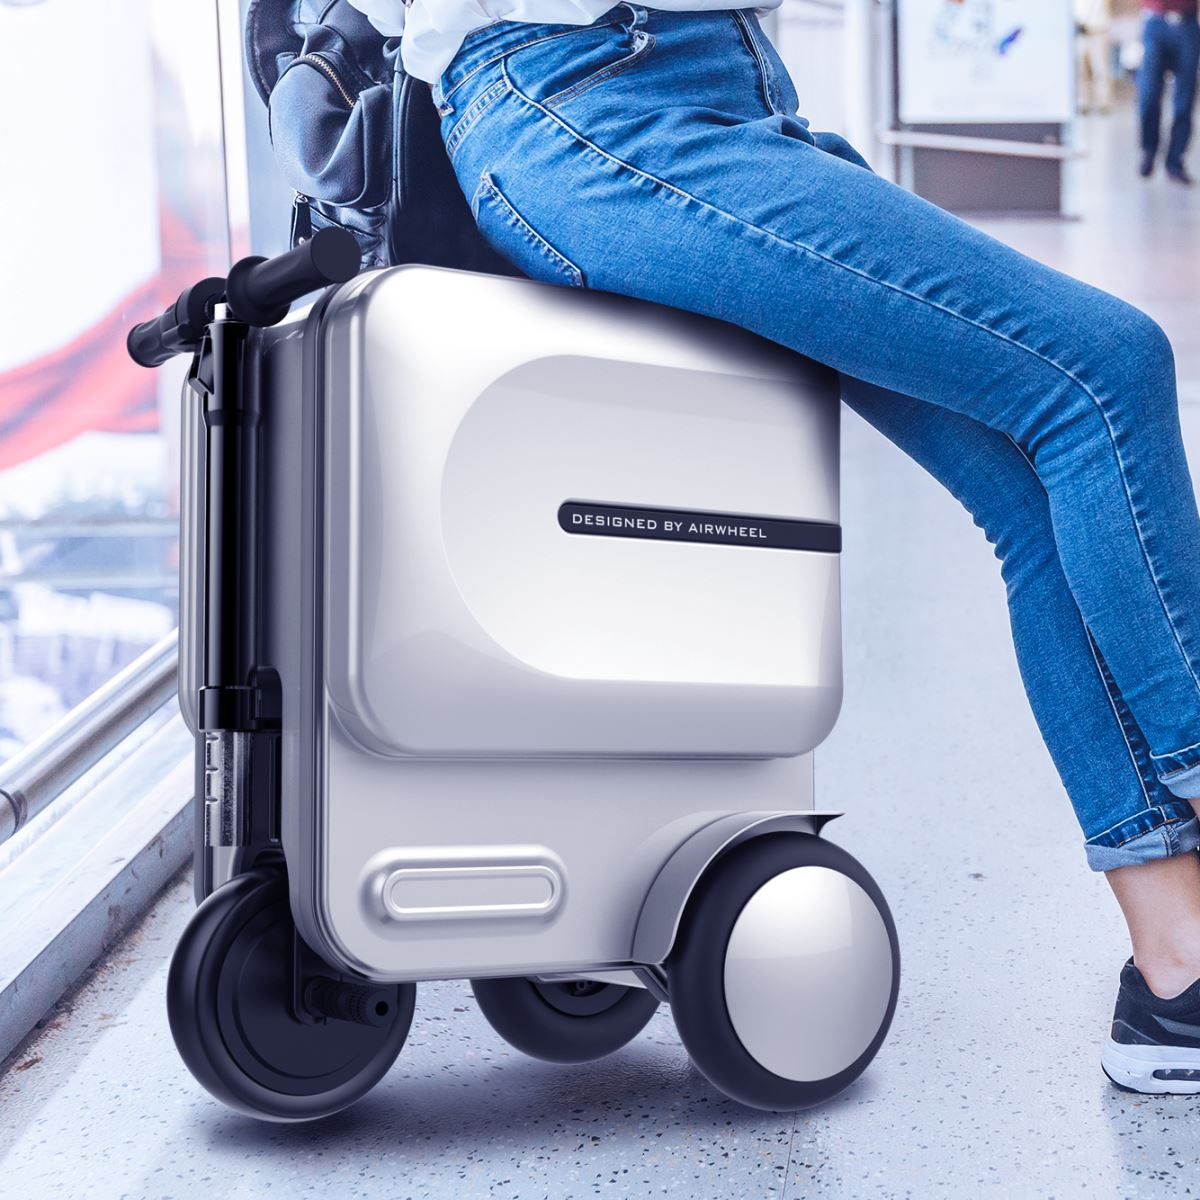 airwheel se3 rideable carry on%20luggage.